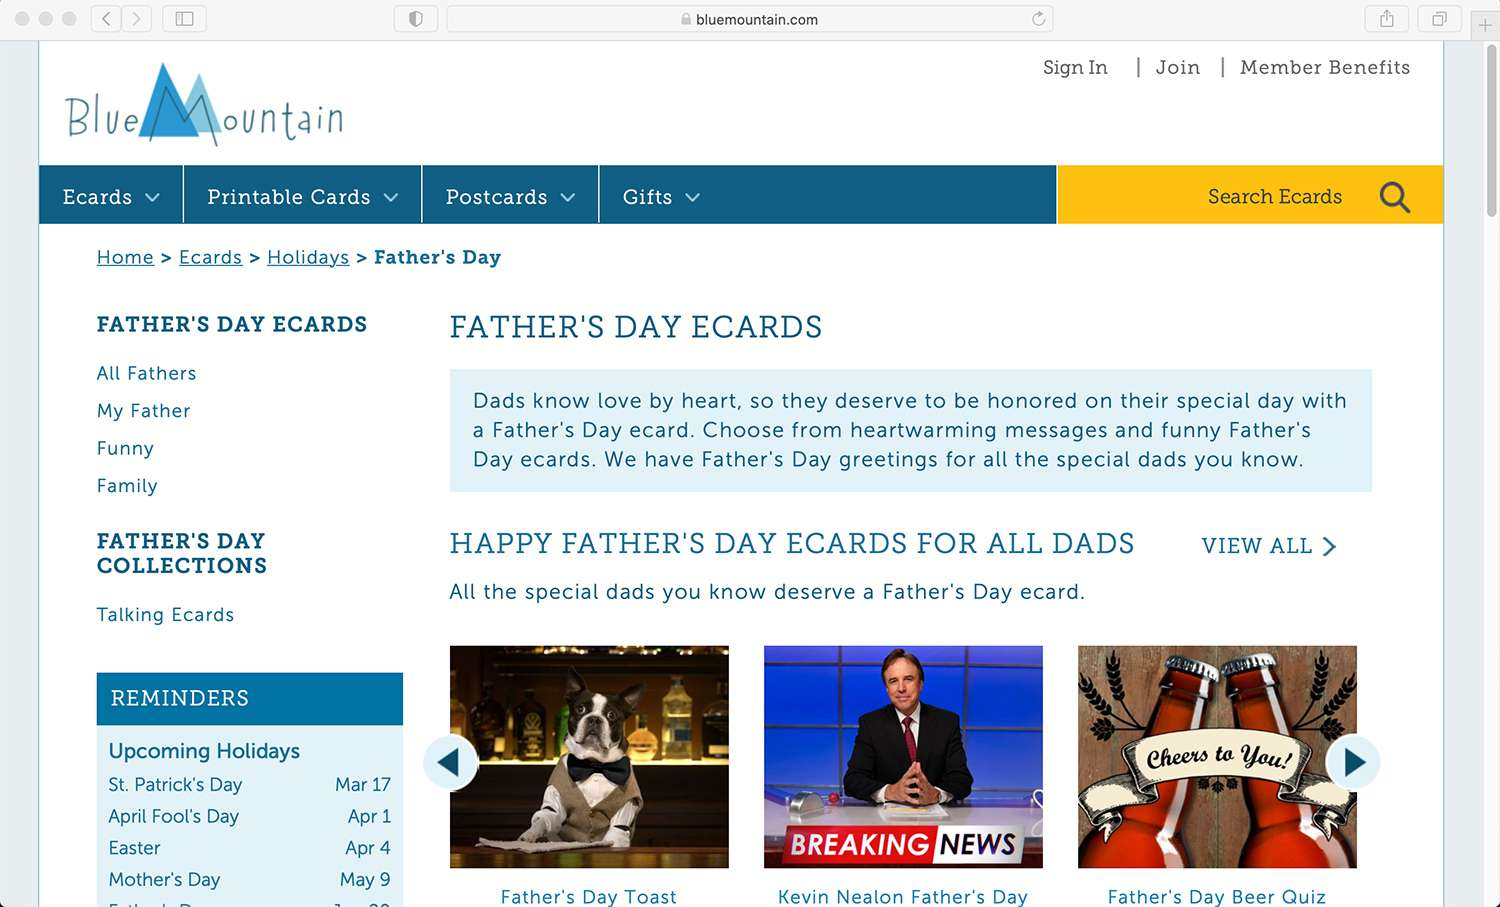 Blue Mountain e-cards for Father's Day and other special days